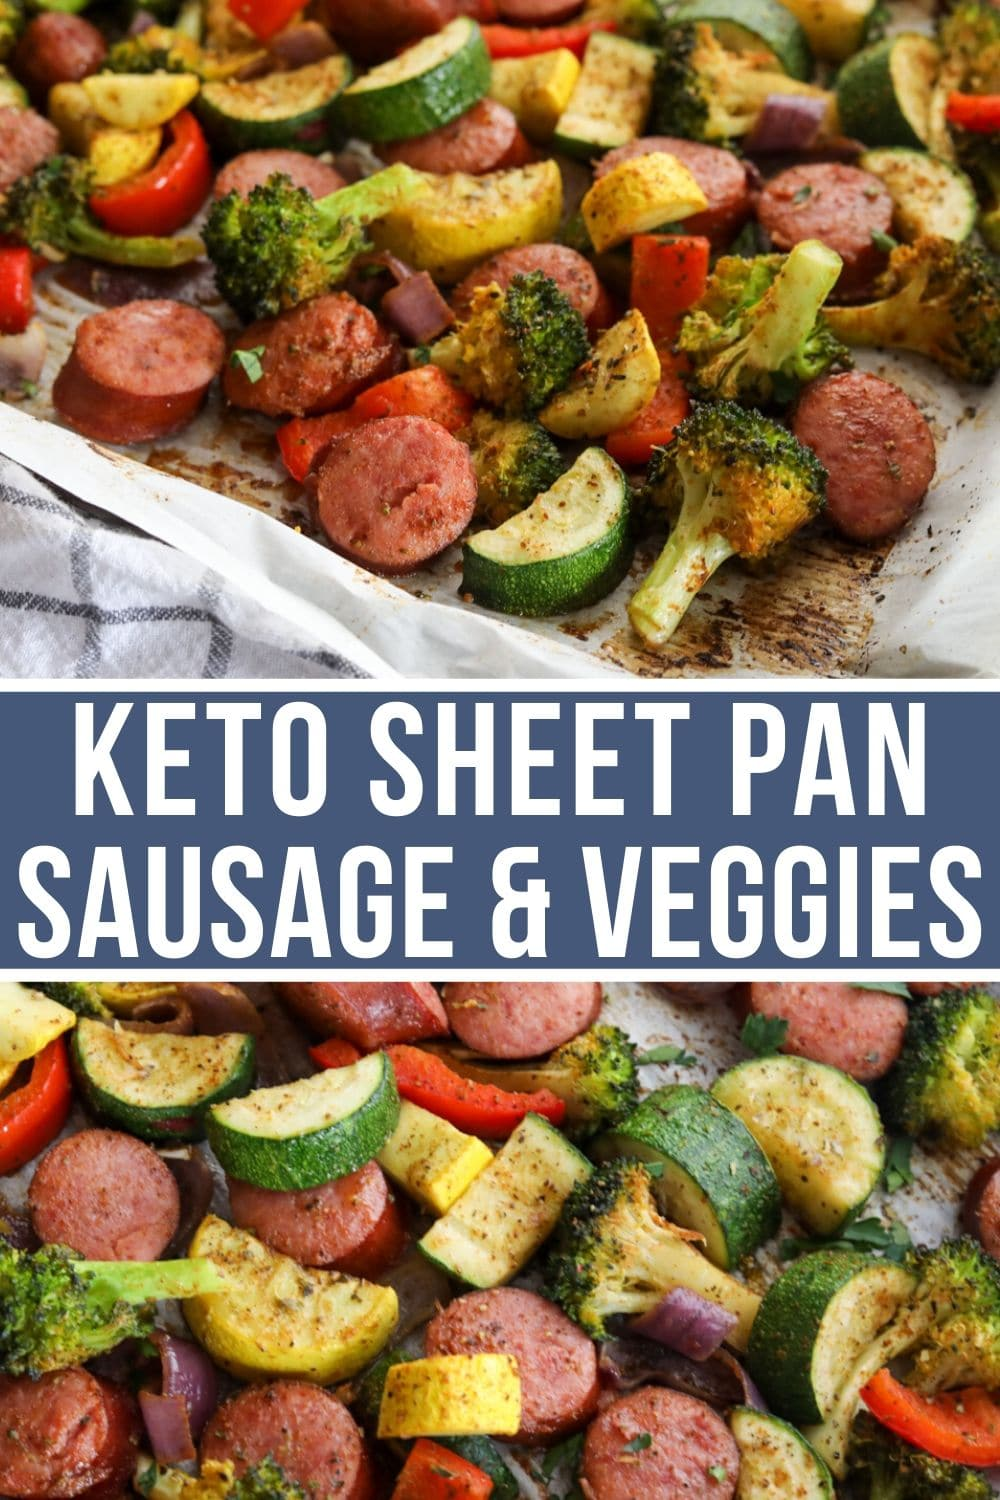 Keto Sheet Pan Sausage and Veggies image for Pinterest